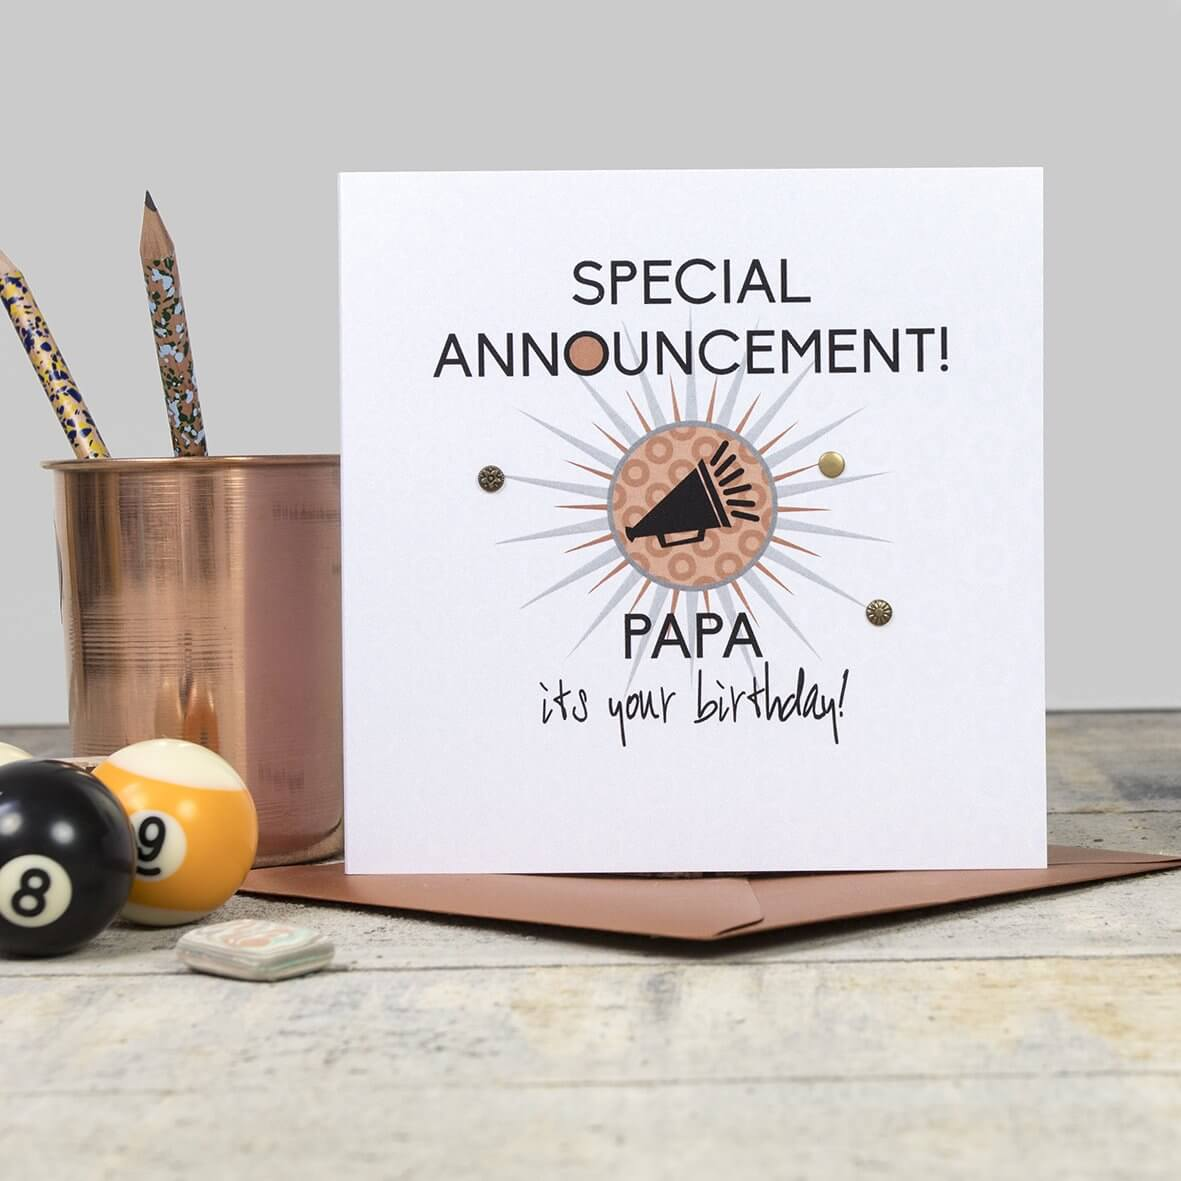 Special Announcement - Papa it's your Birthday!